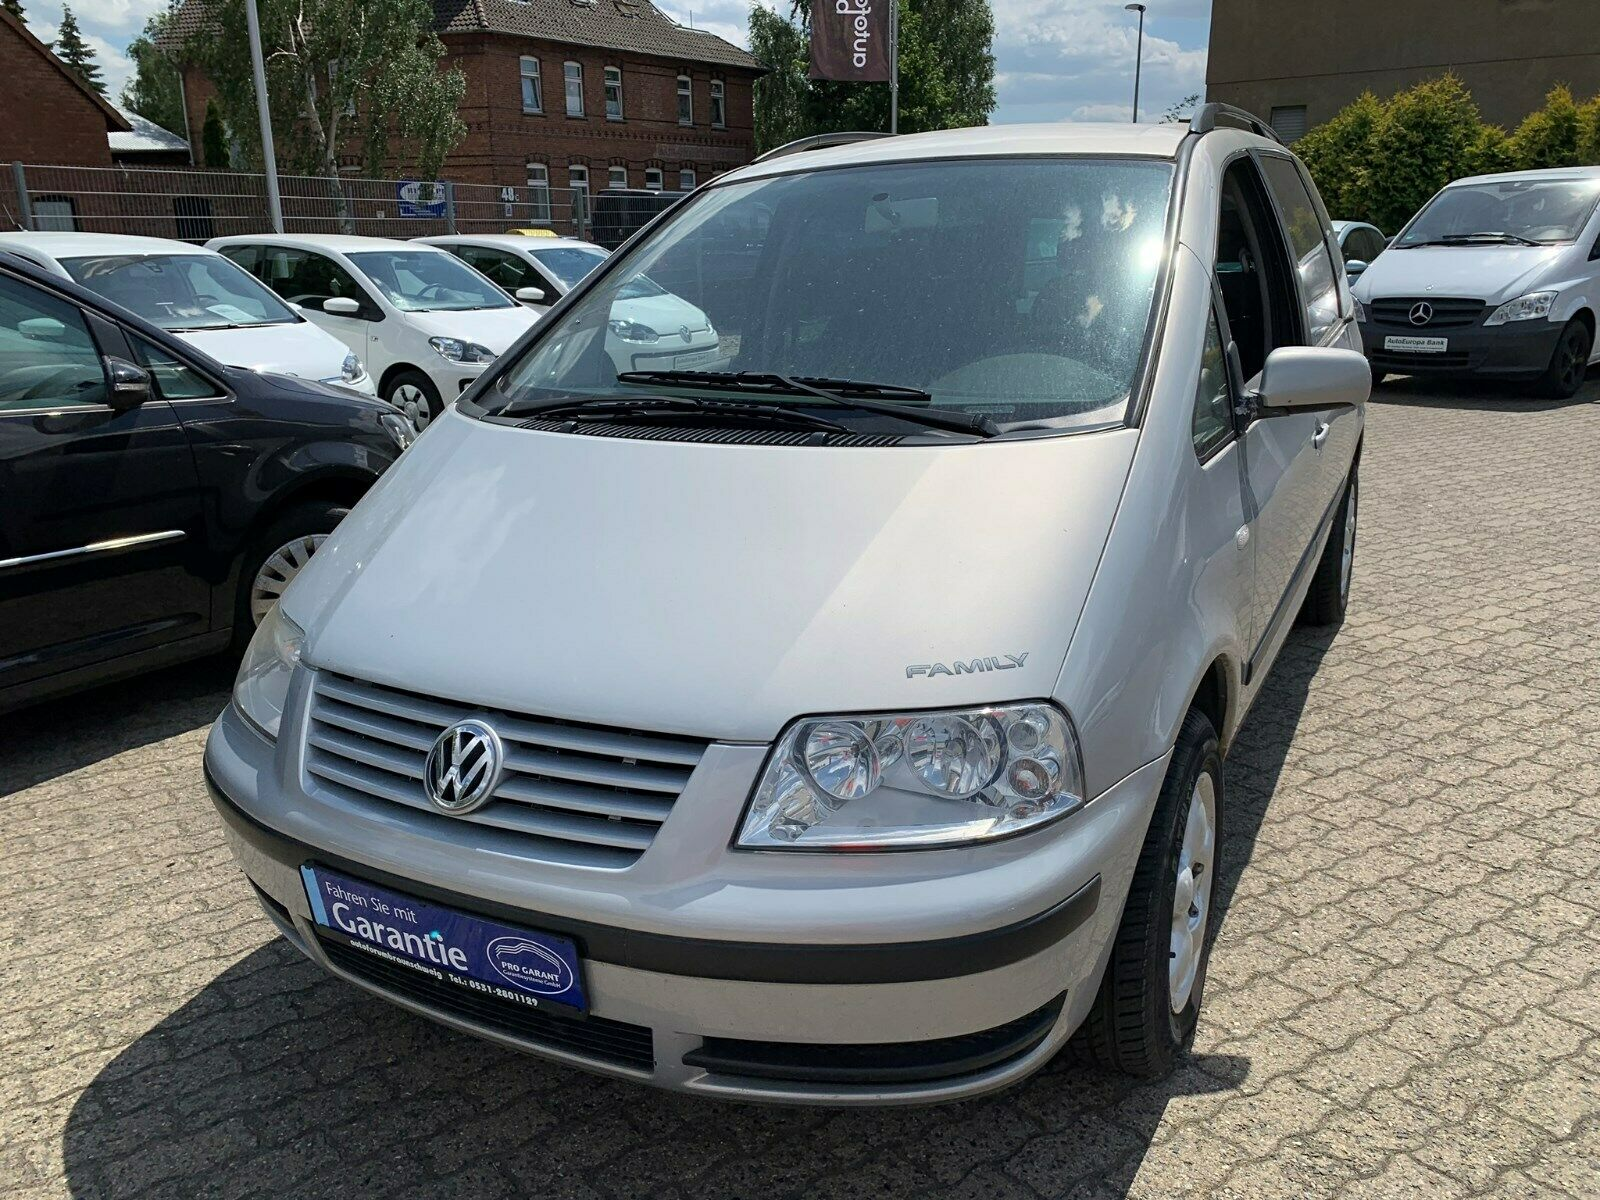 VW Sharan 1.9TDI Comfortline Family